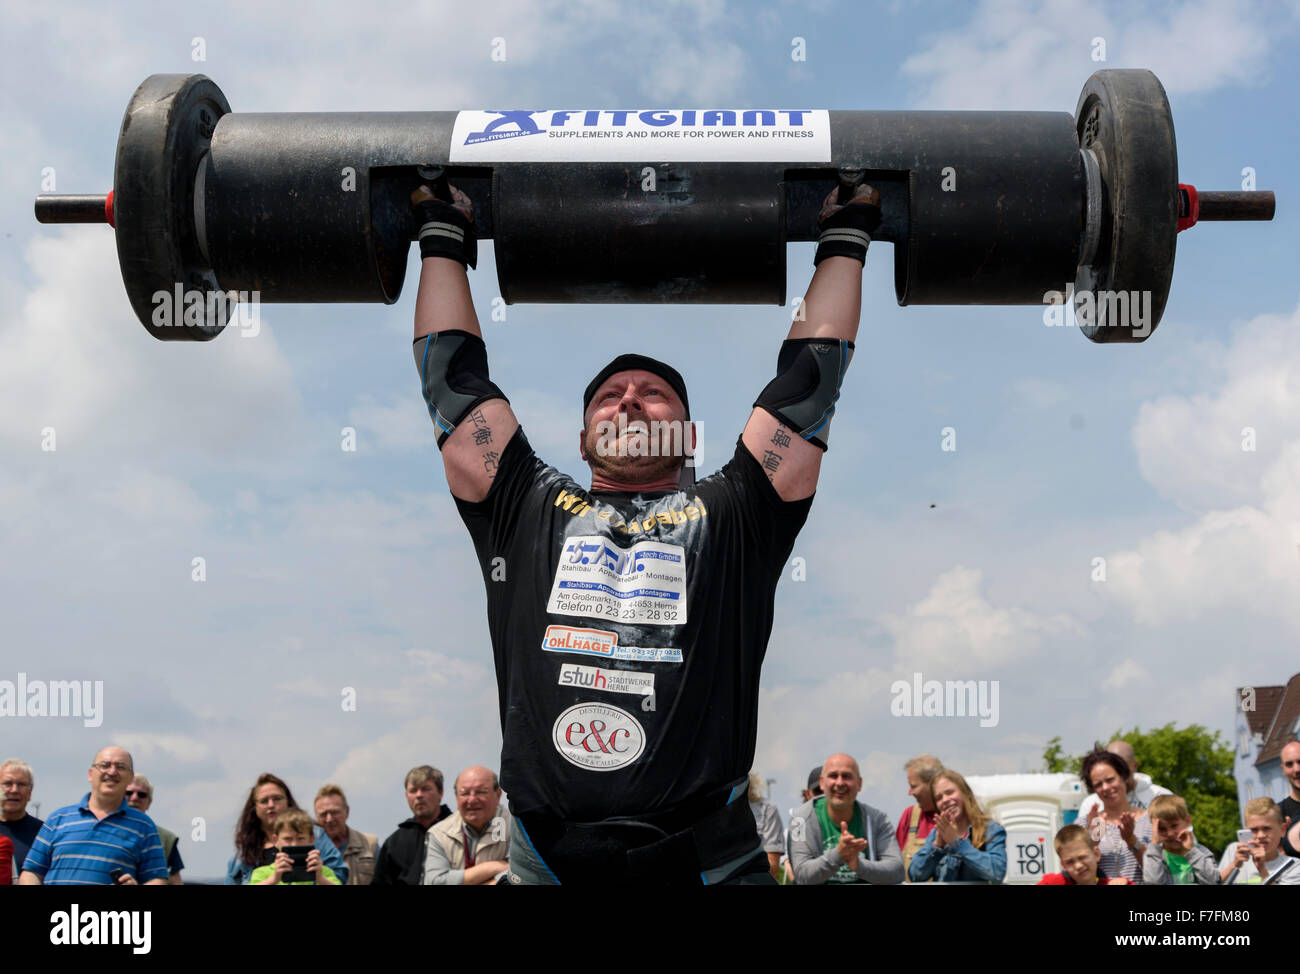 A strong man proves his strength at a public athletics sports event. - Stock Image